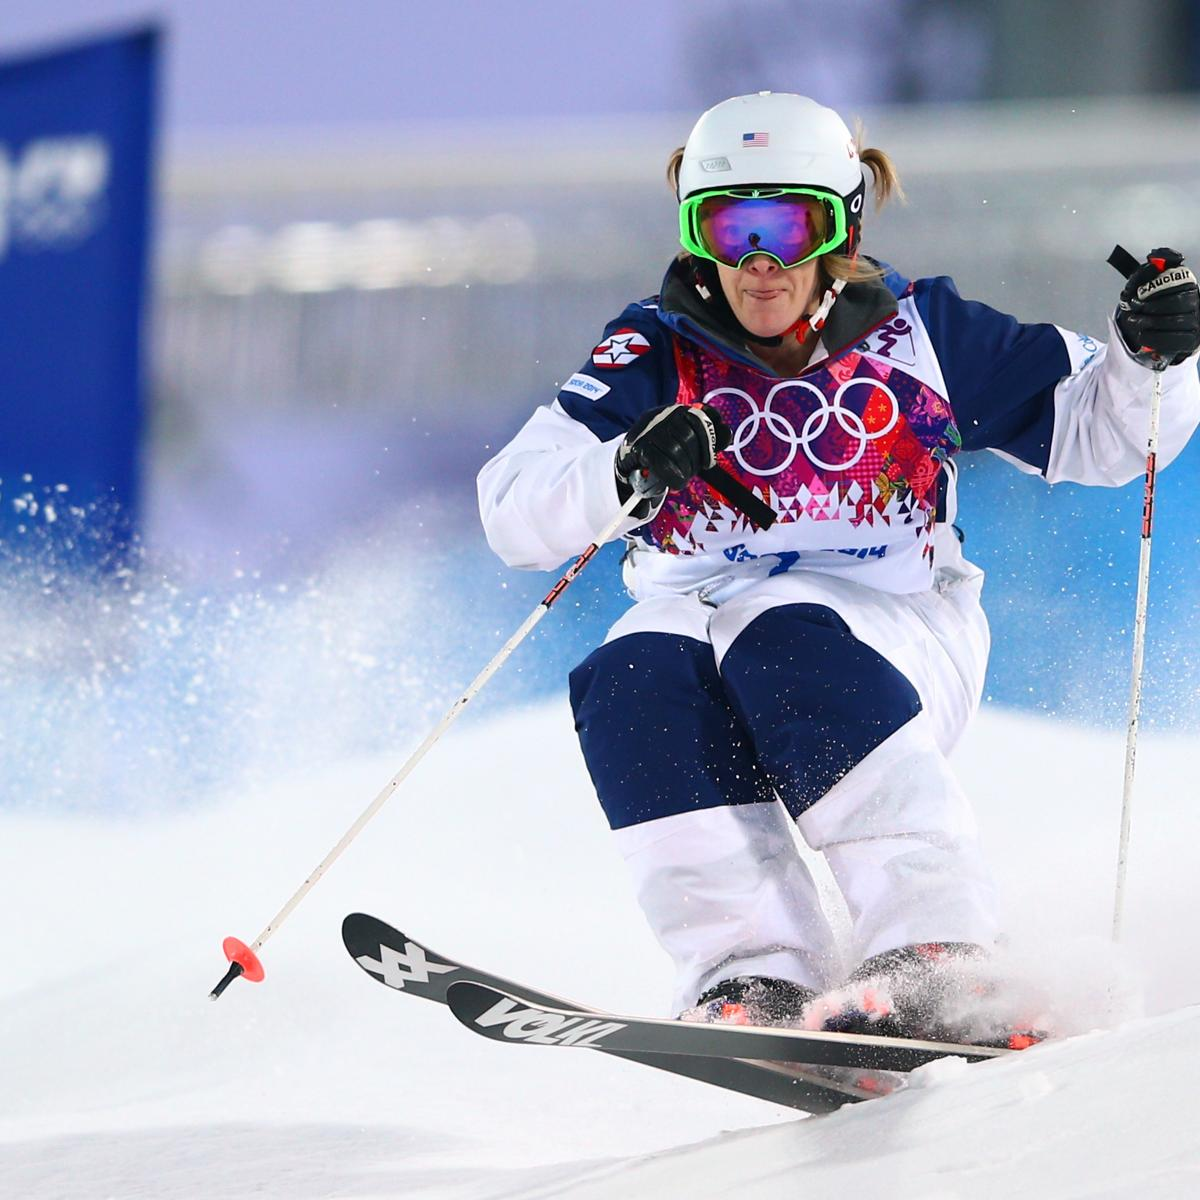 Women's Freestyle Skiing Moguls Olympics 2014: Full Qualifying Results, Scores